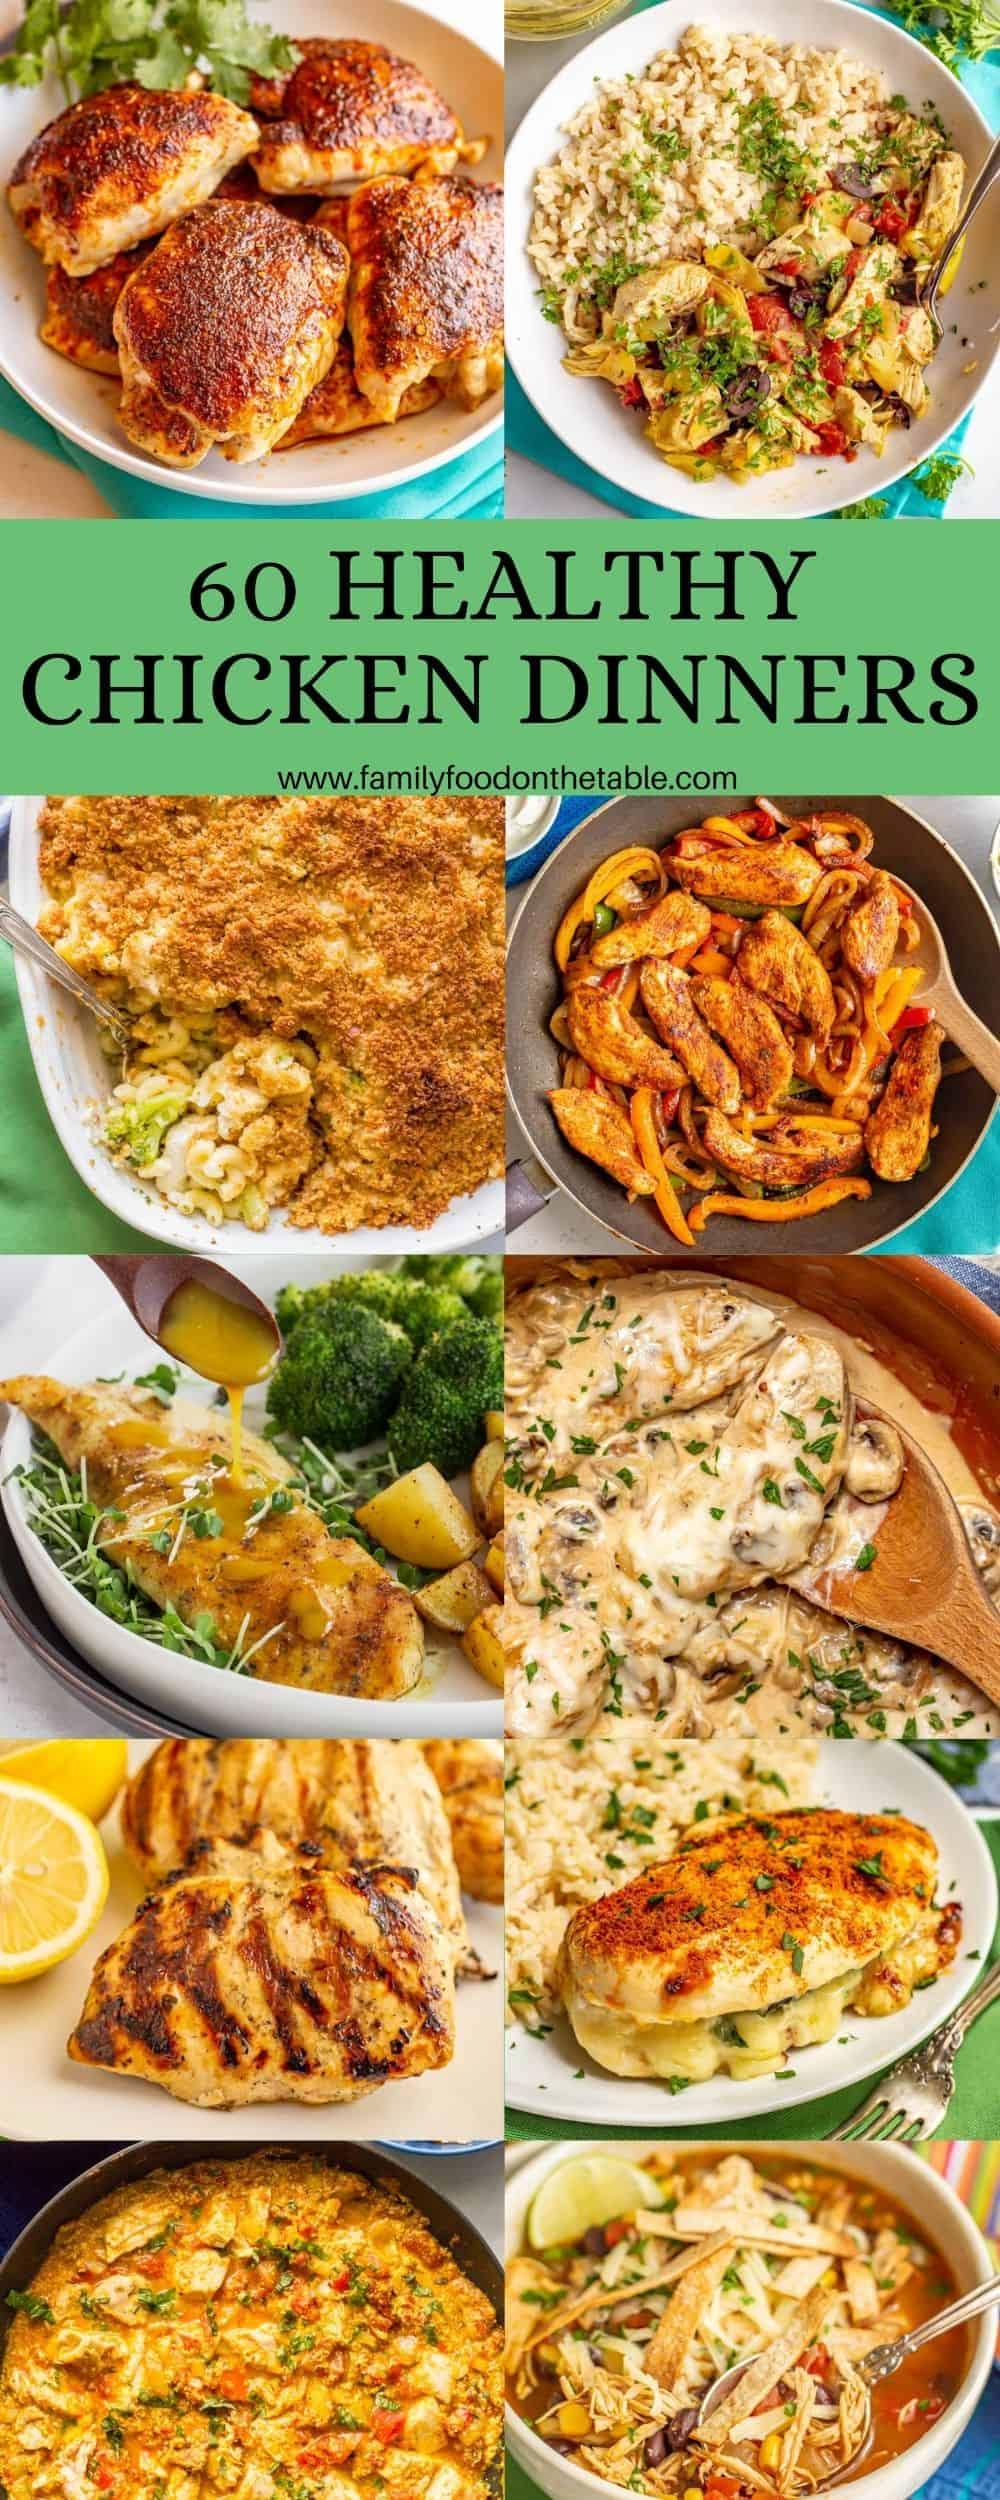 A collage of 10 chicken dinner recipe photos with a text box in the middle reading 60 healthy chicken dinners